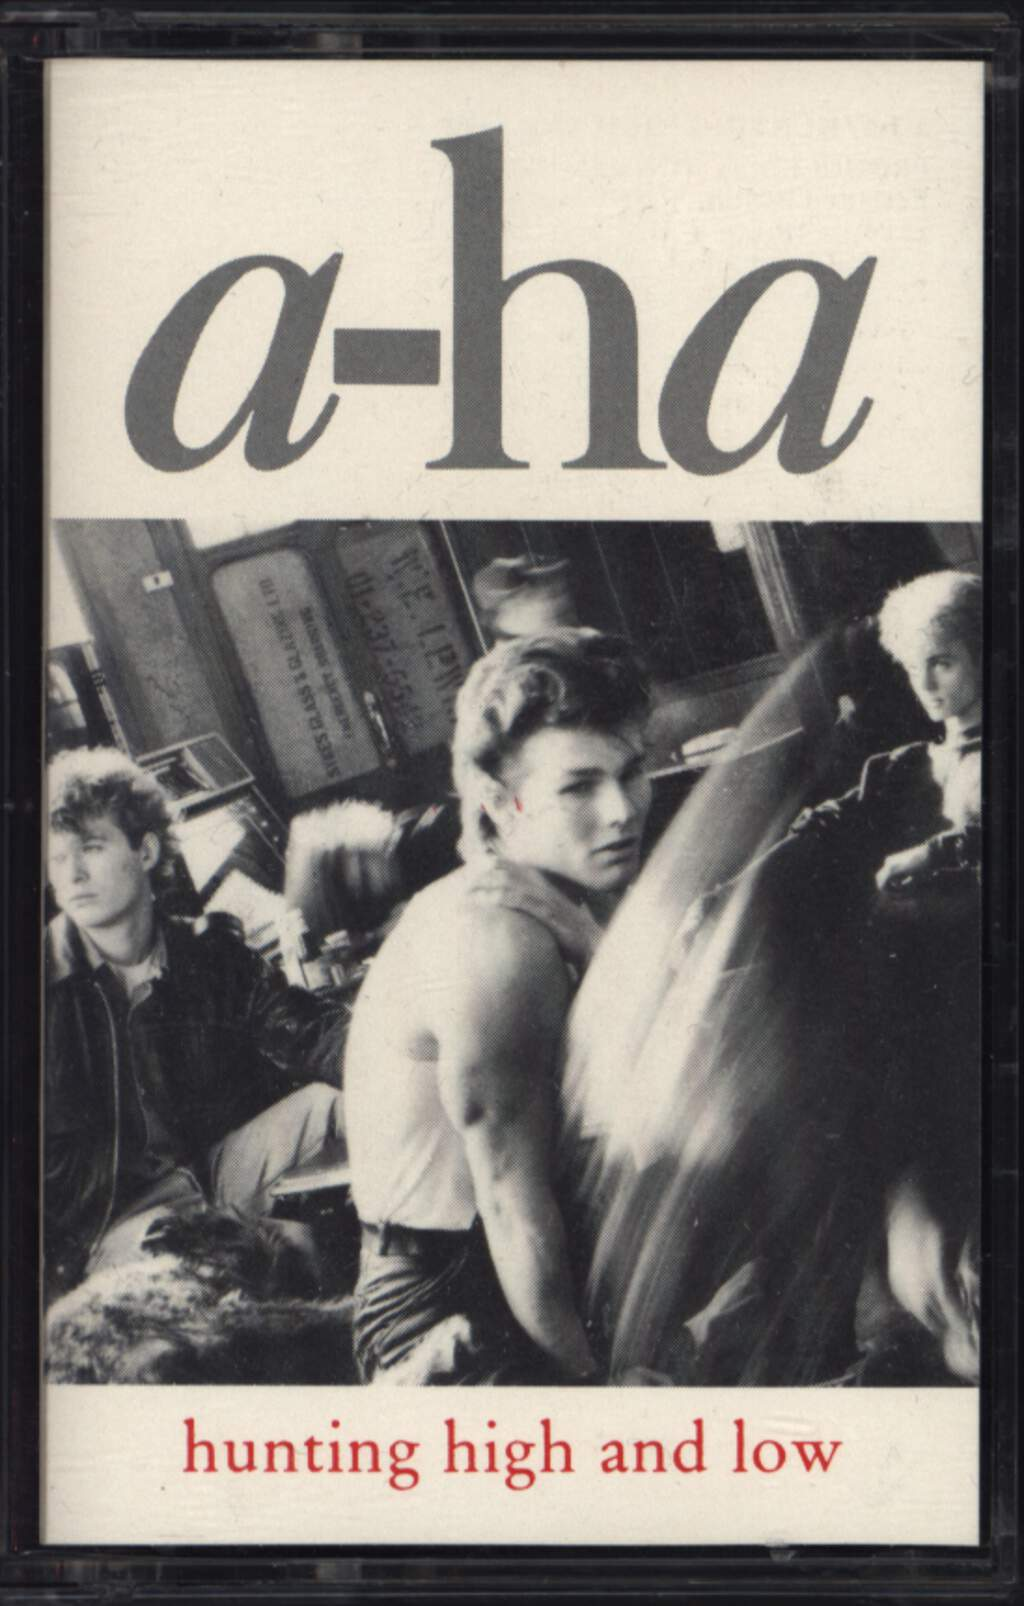 a-ha: Hunting High And Low, Compact Cassette